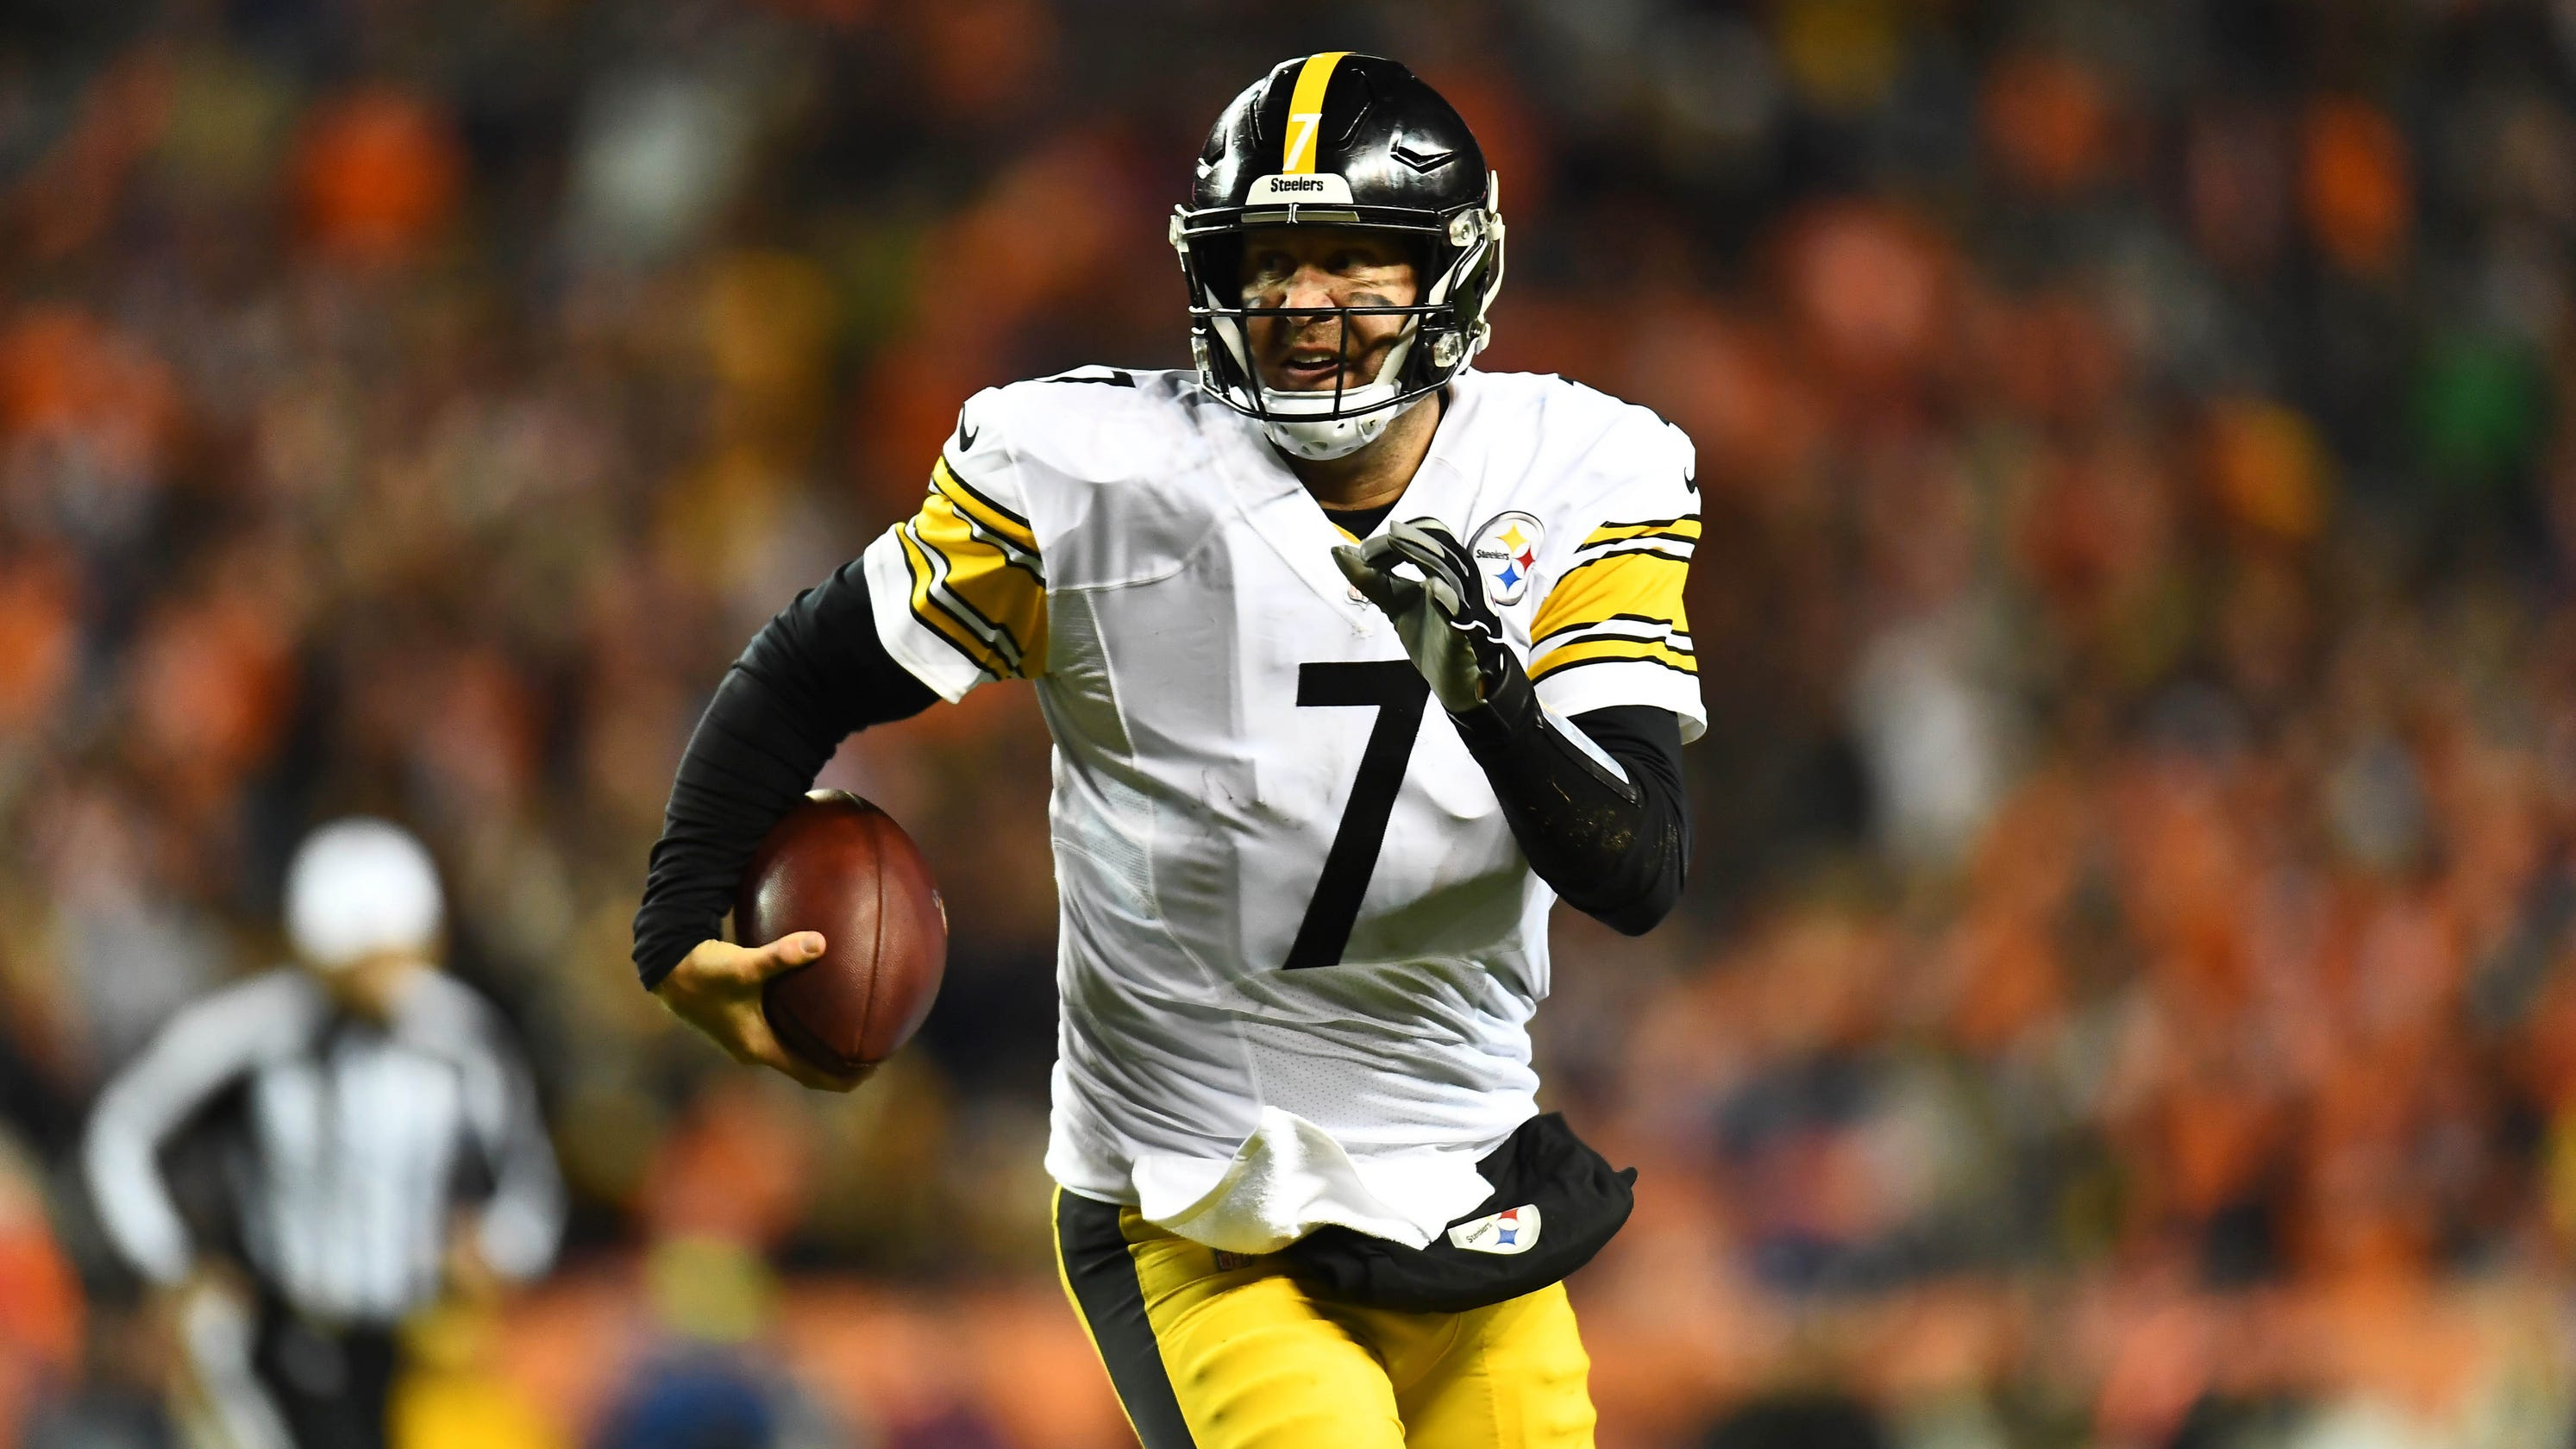 e422d7bd4 NFL  Steelers set to bounce back in big Week 13 matchup with Chargers